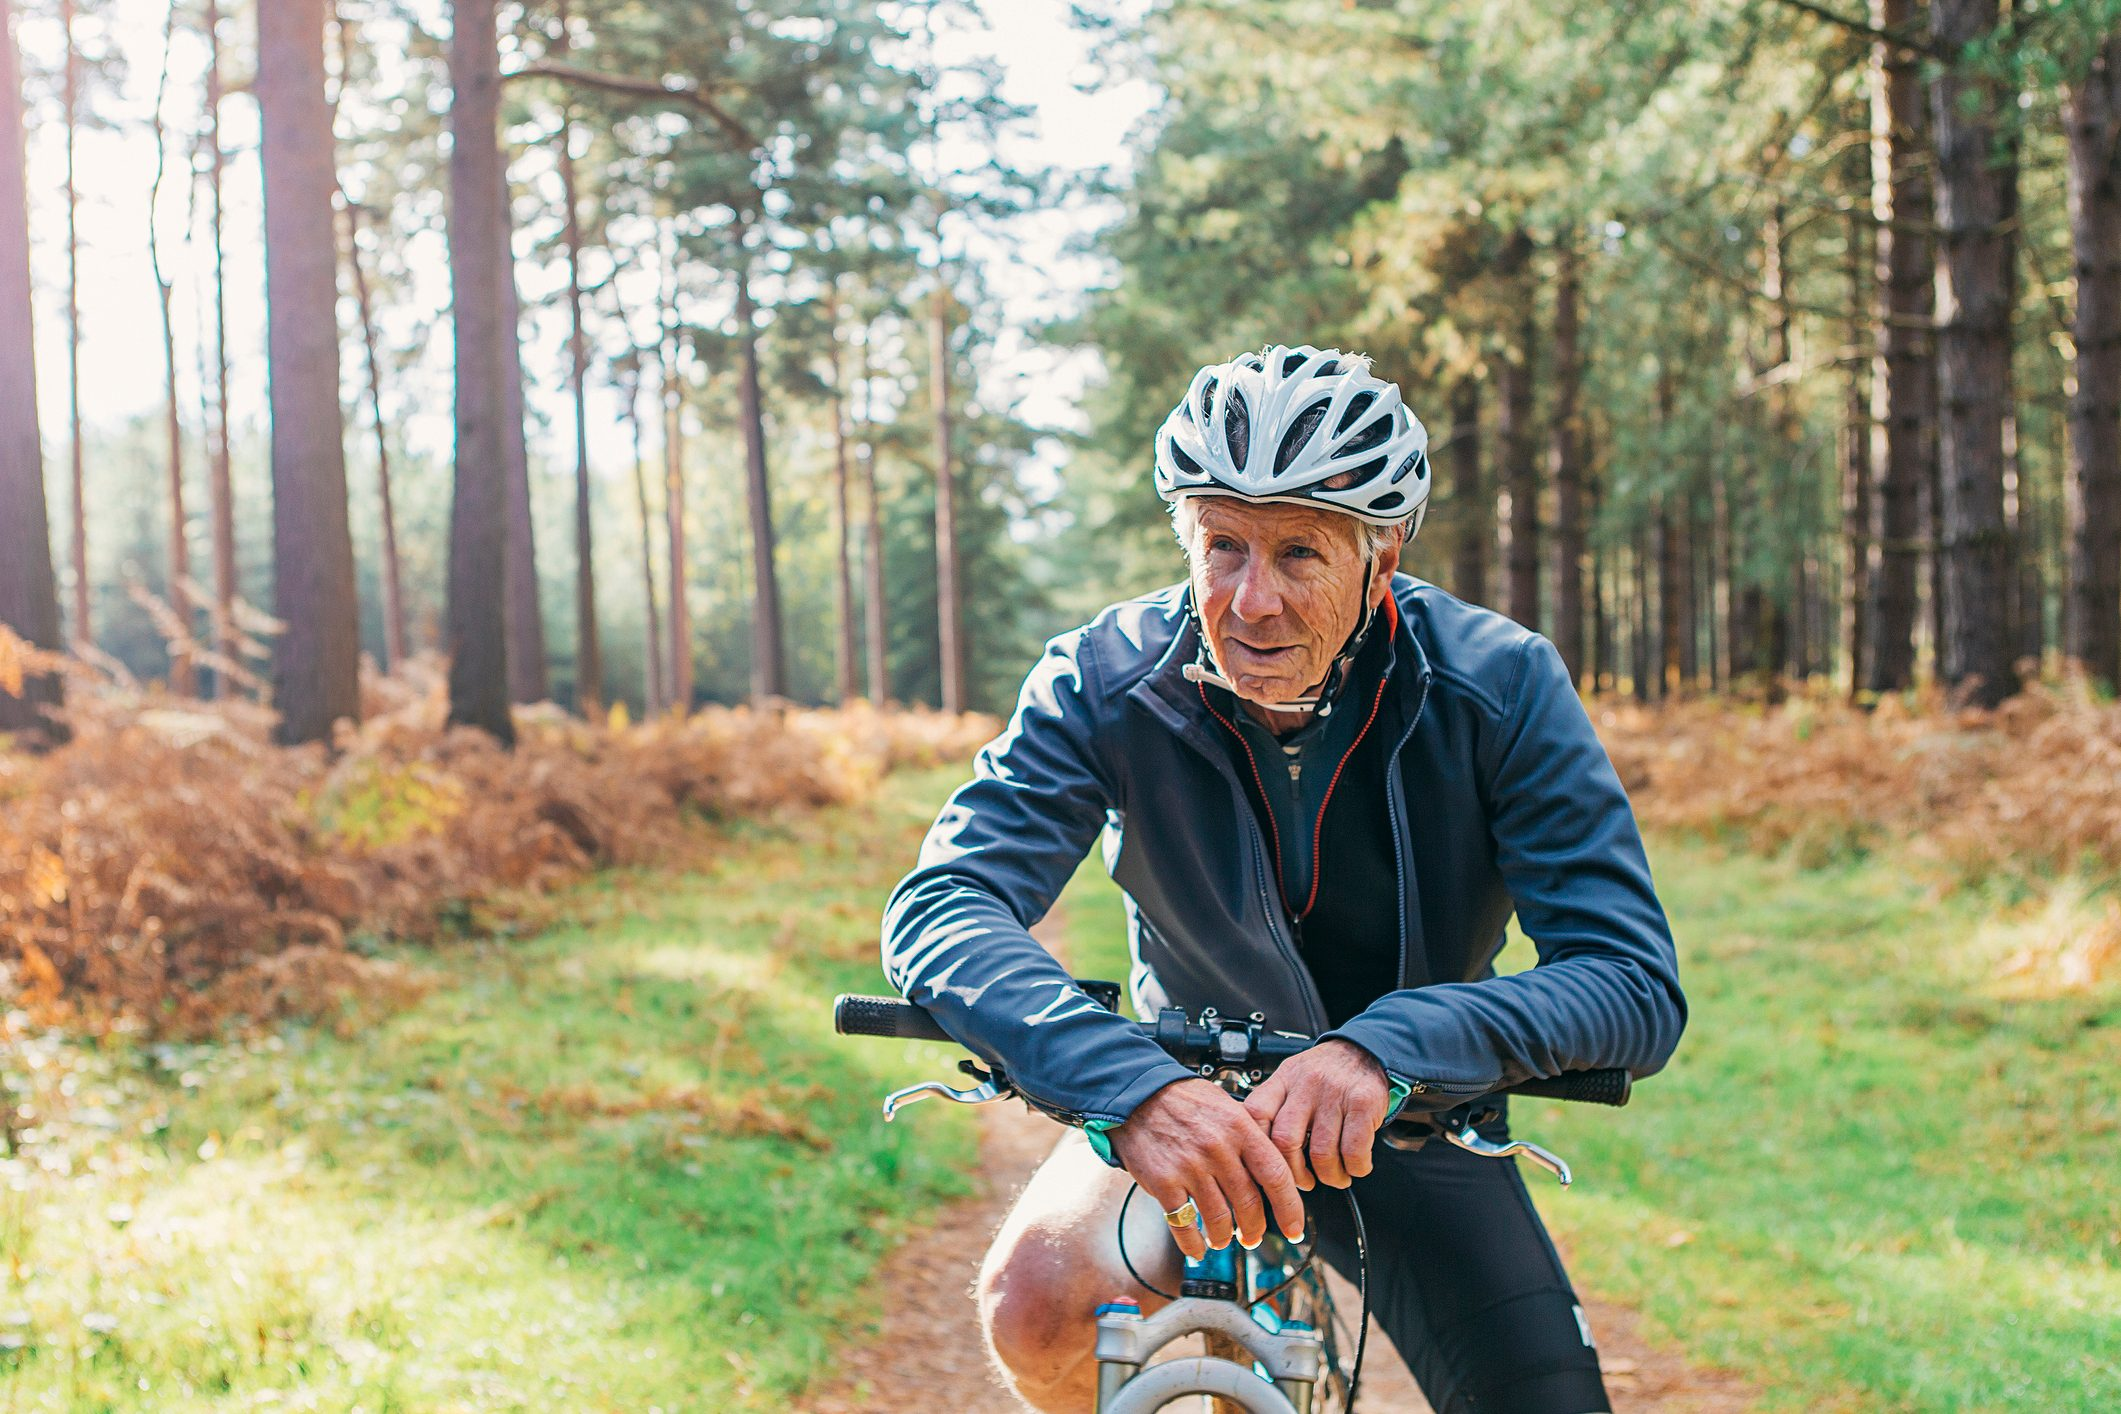 senior man riding bike through forest